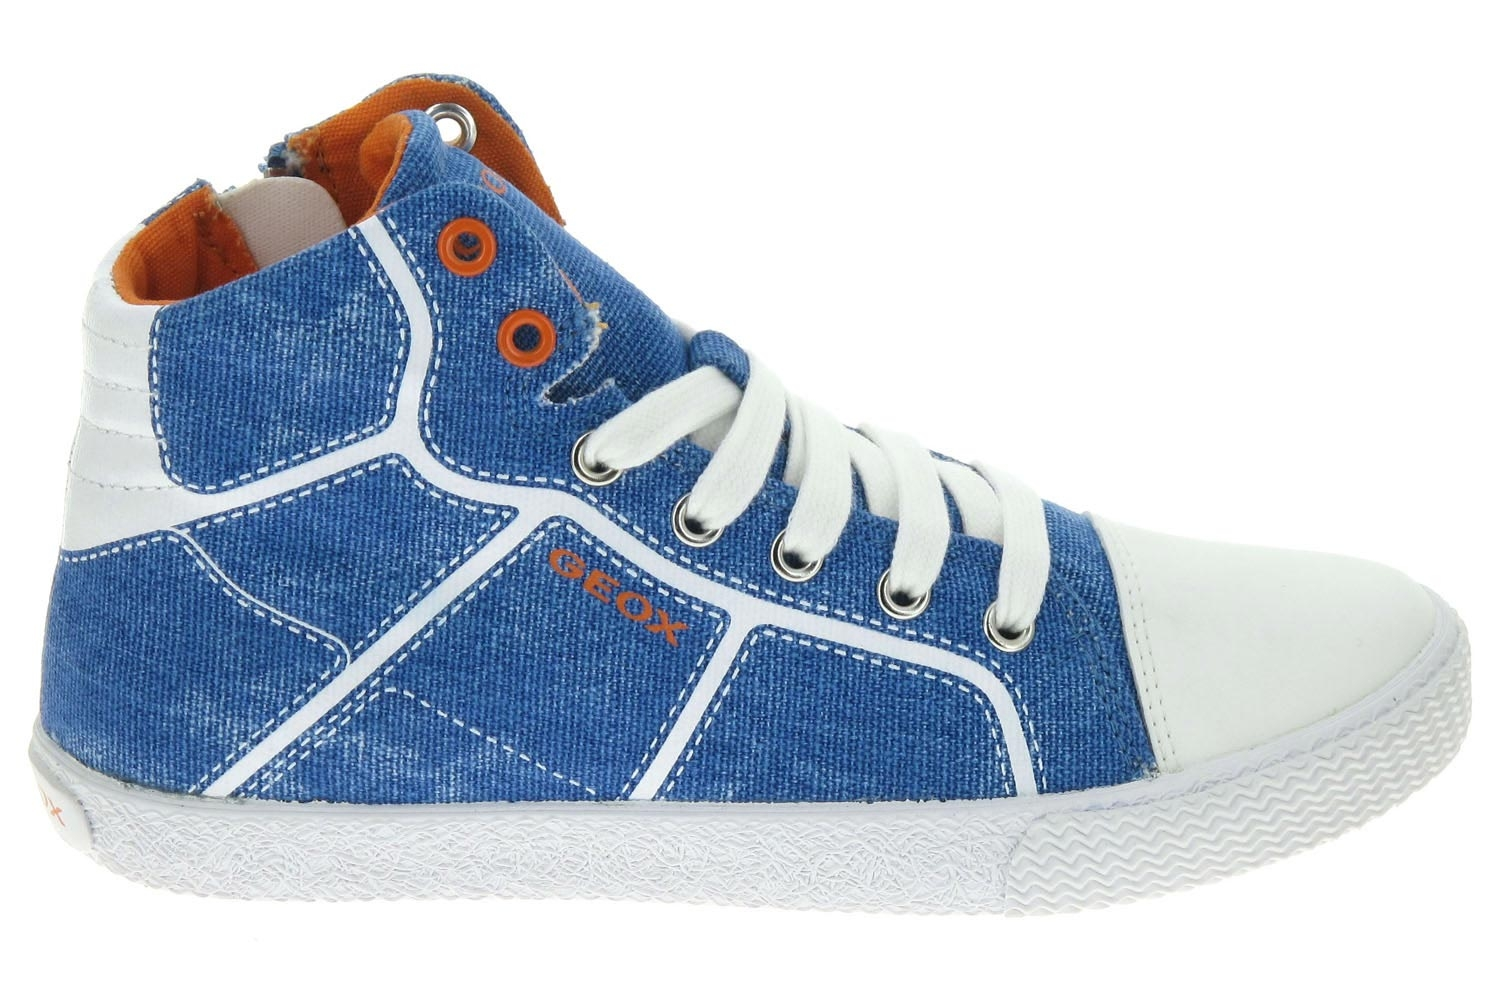 toile en en toile Chaussures geox Chaussures bleu rdexBEQCoW